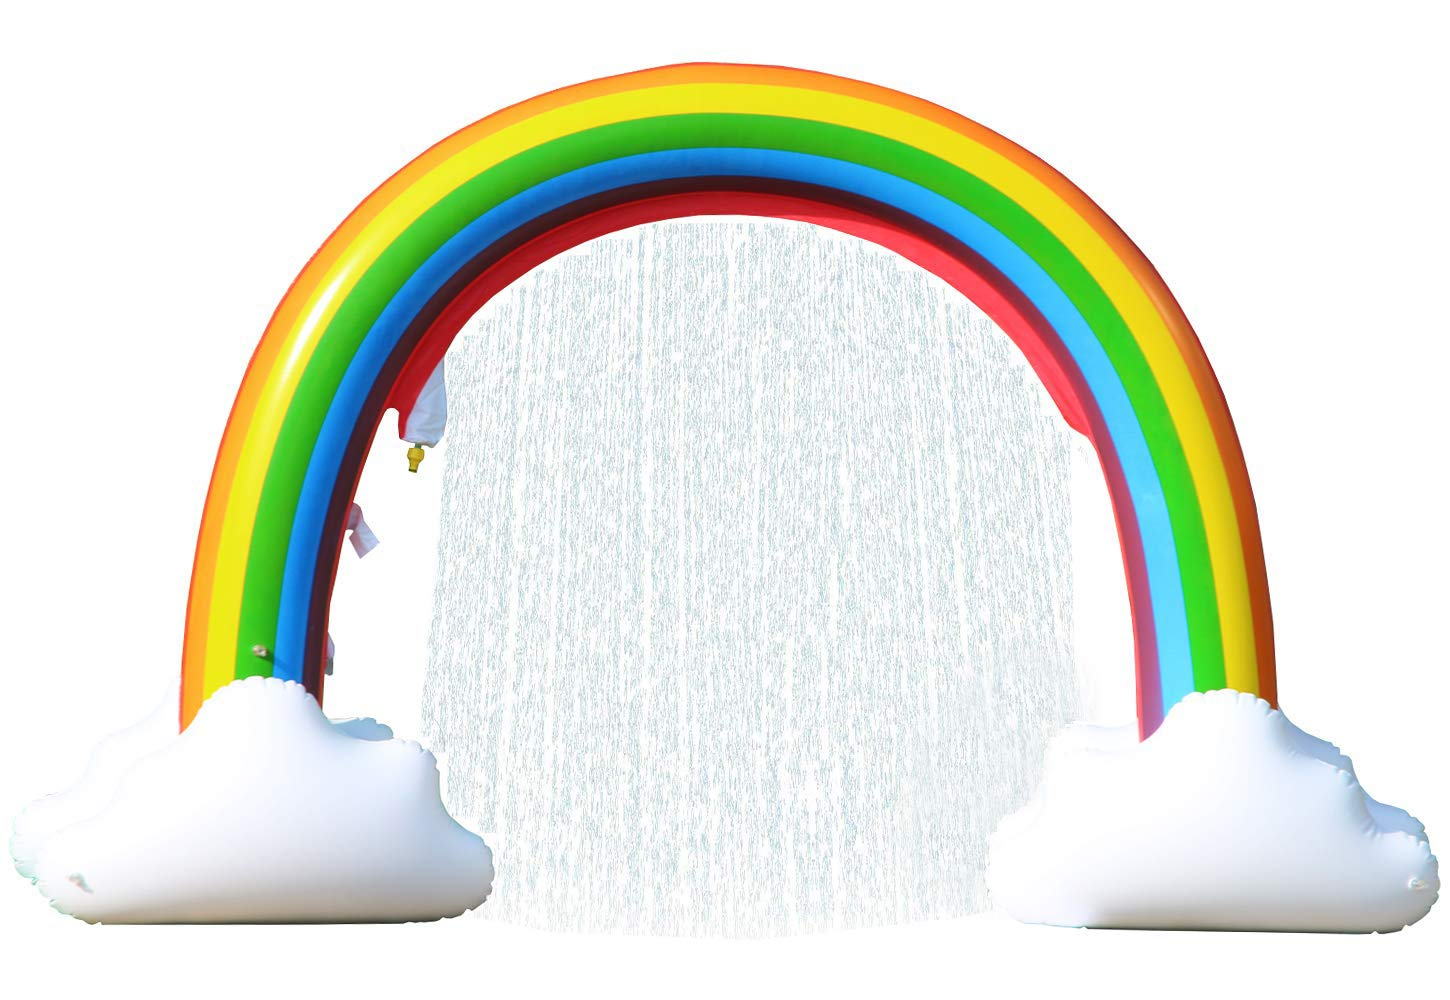 LANGXUN Giant Inflatable Rainbow Sprinkler Arch, Outdoor Summer Water Toys for Kids 3